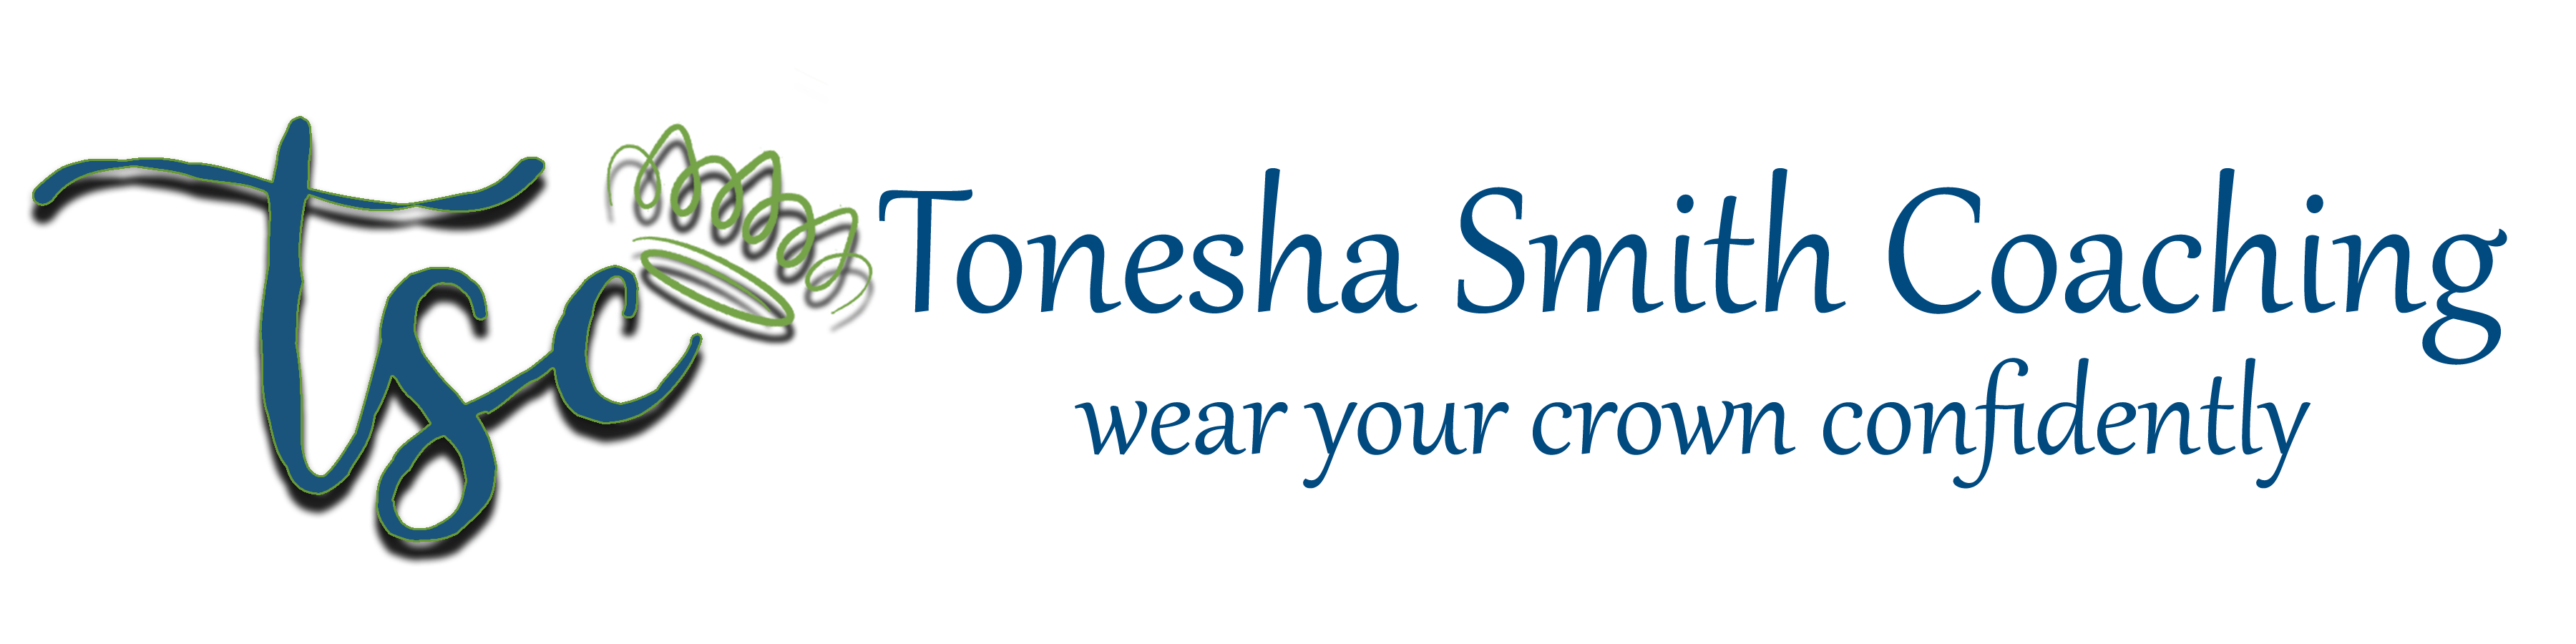 Tonesha Smith Life Coaching